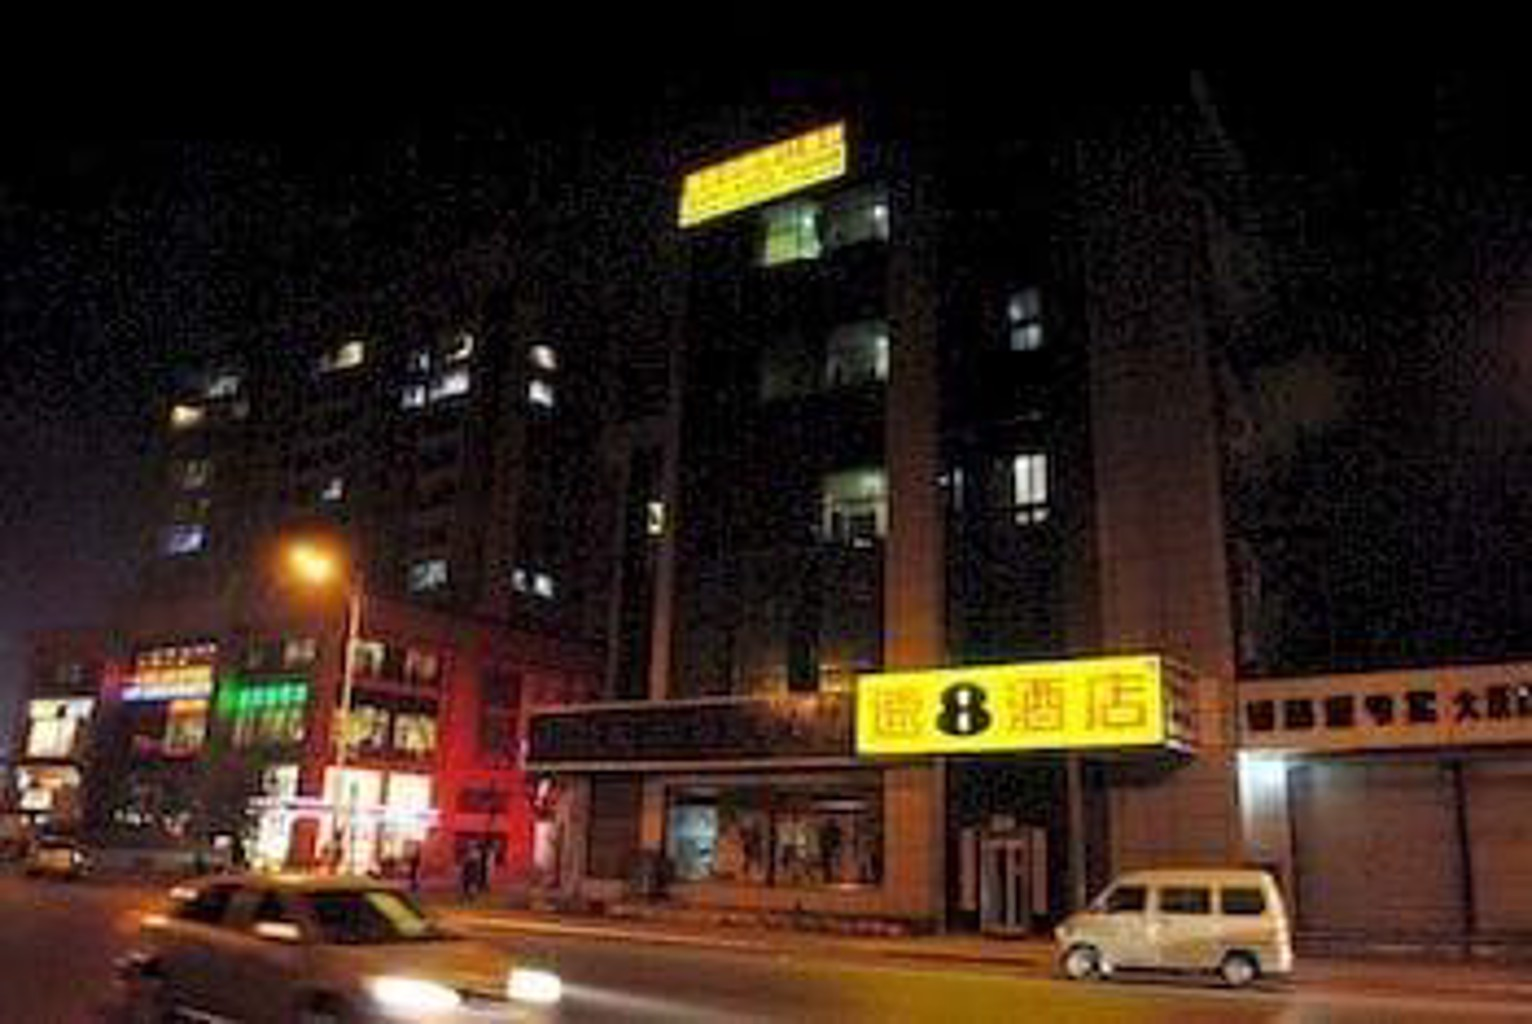 Super 8 Hotel Tianjing Wuqing Central Square